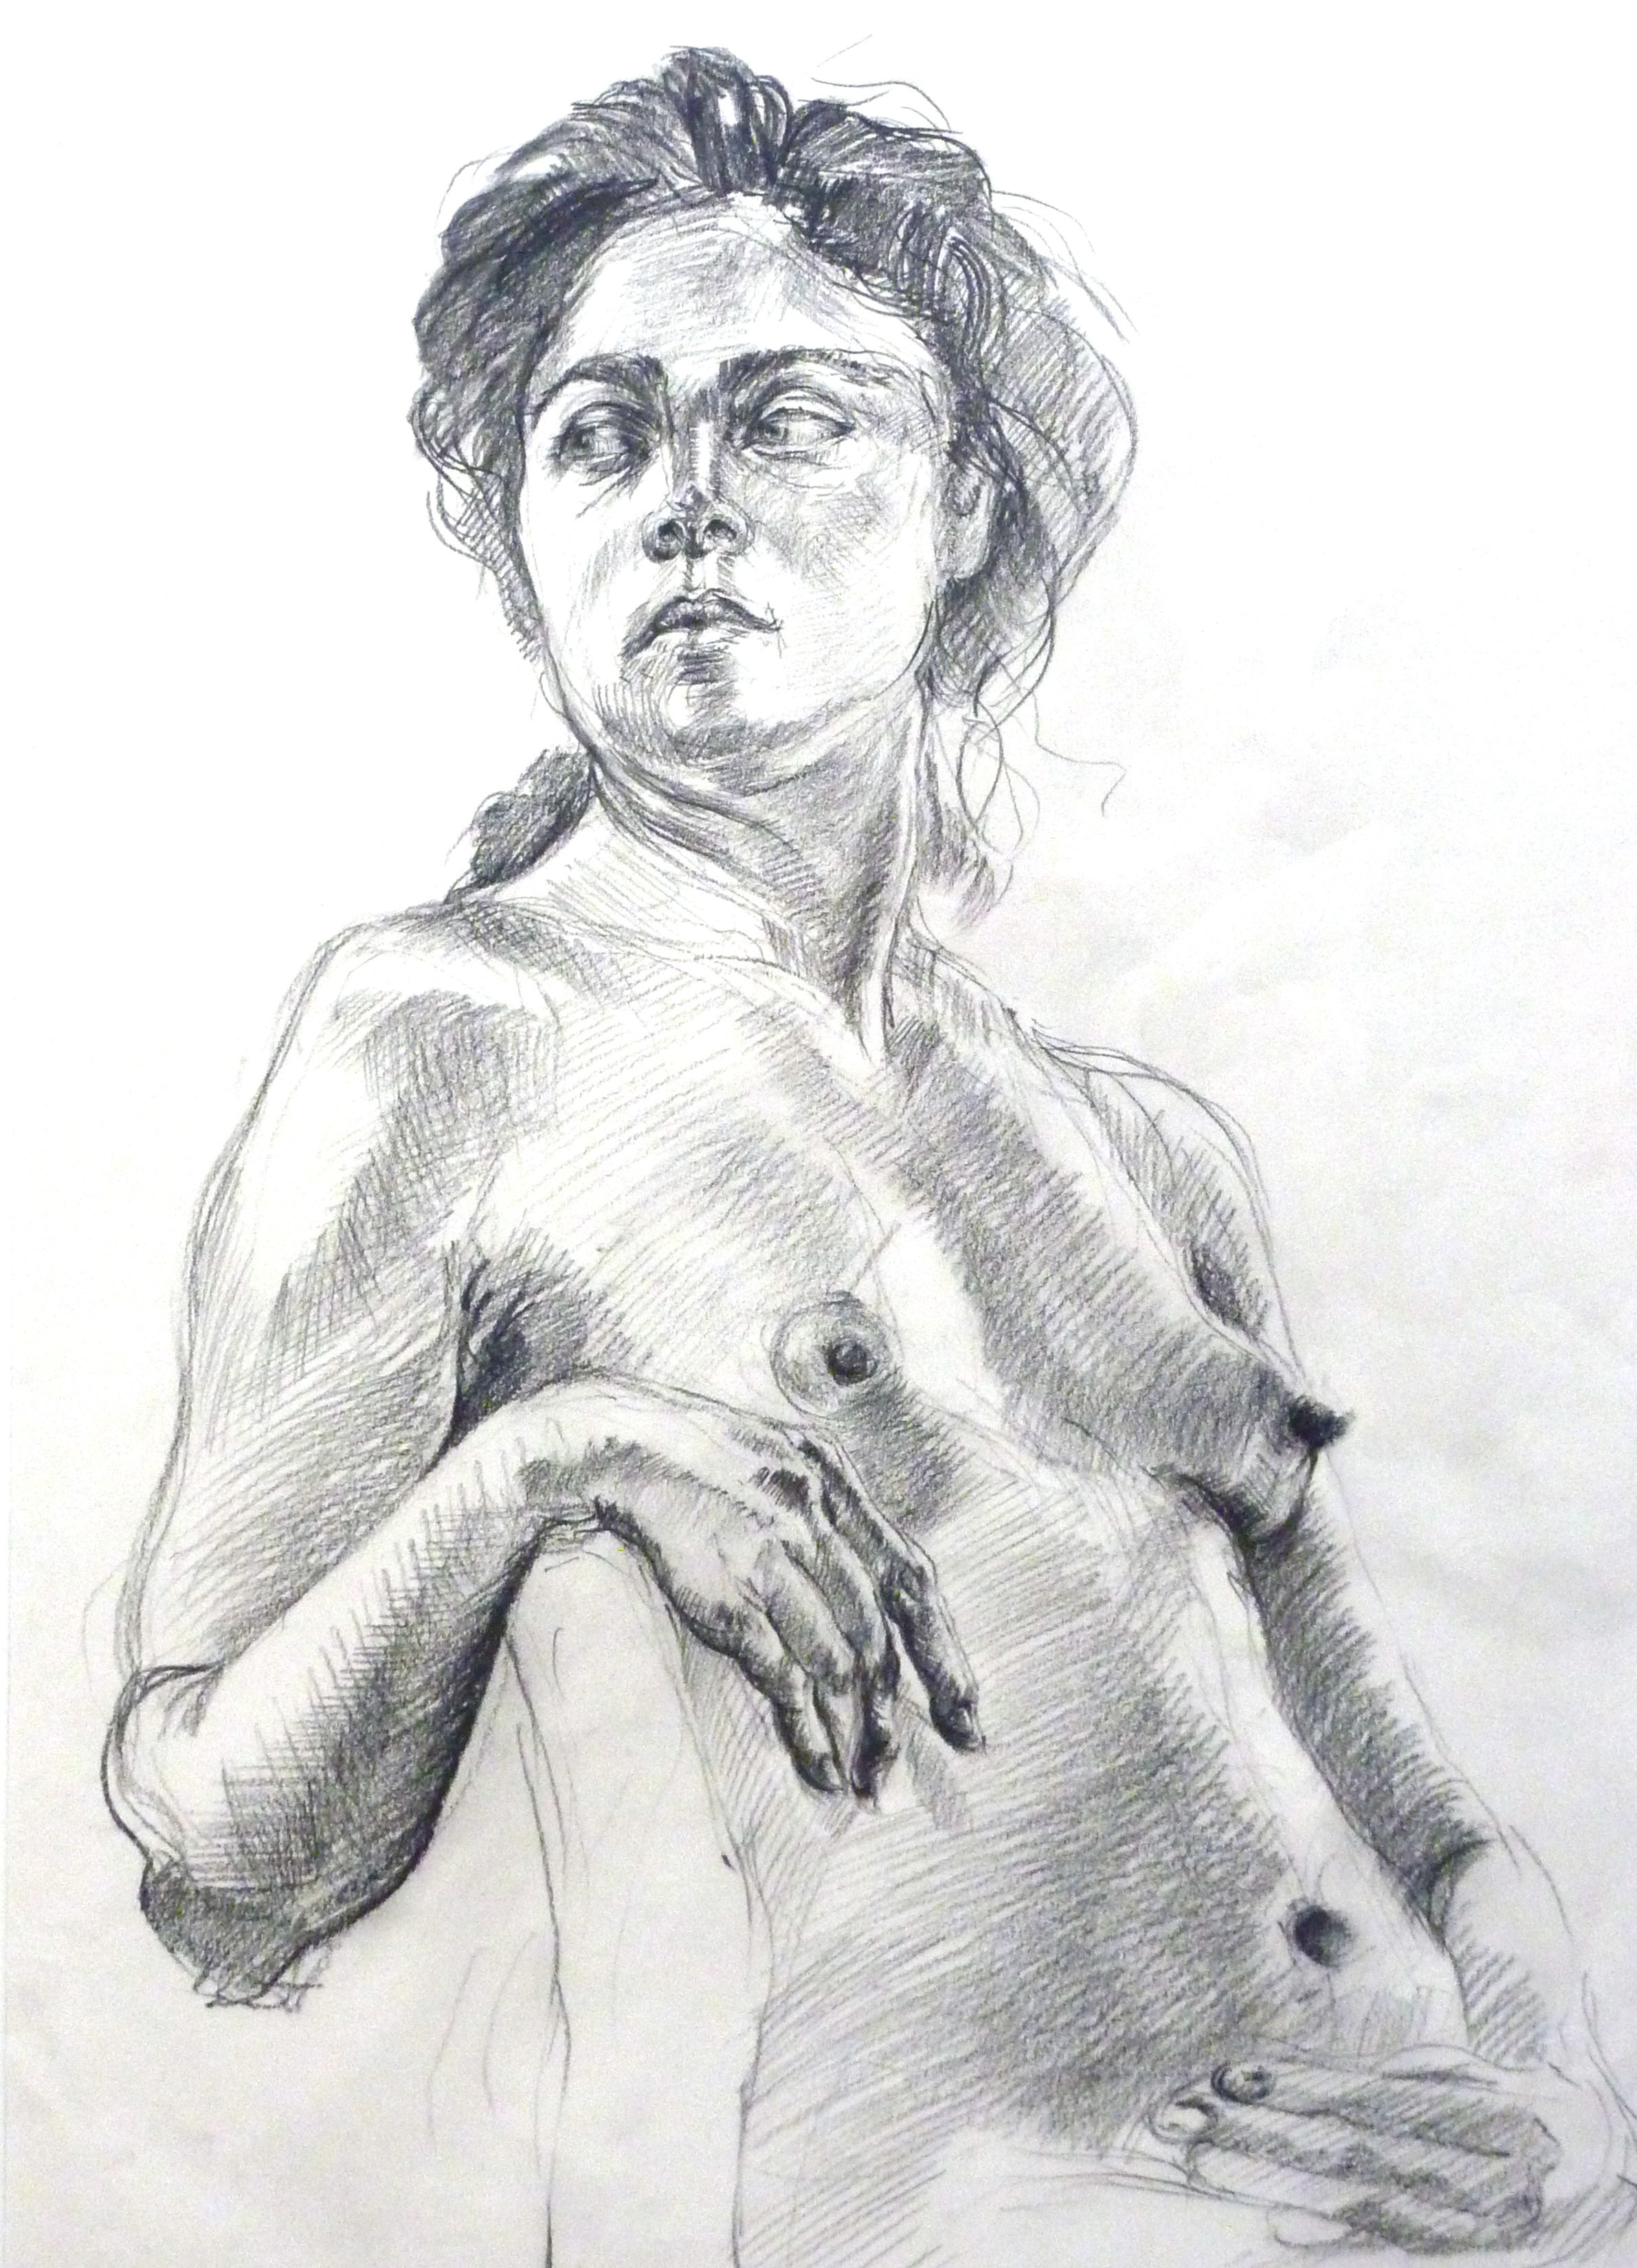 Chris Lines, Life Drawing, chinagraph marker